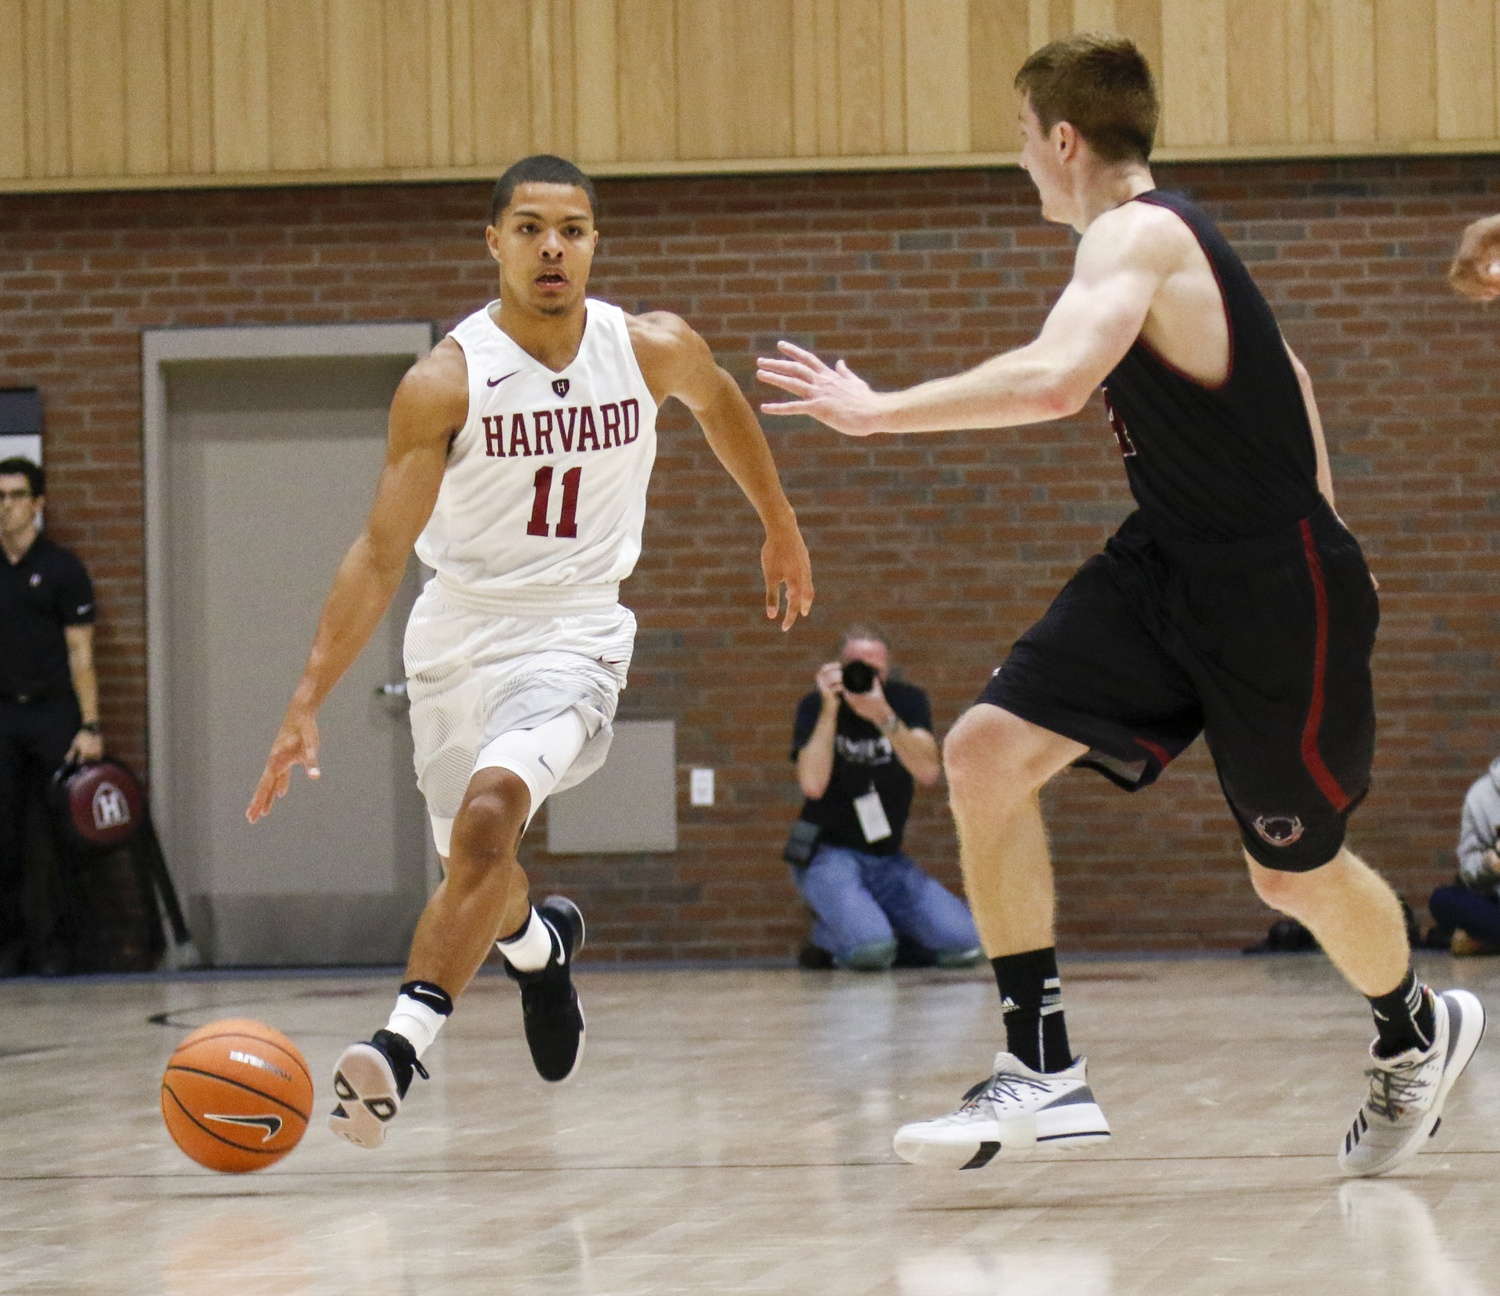 After an injury-riddled sophomore season, former Ivy Rookie of the Year Bryce Aiken hopes to regain his full form as the team's starting point guard.